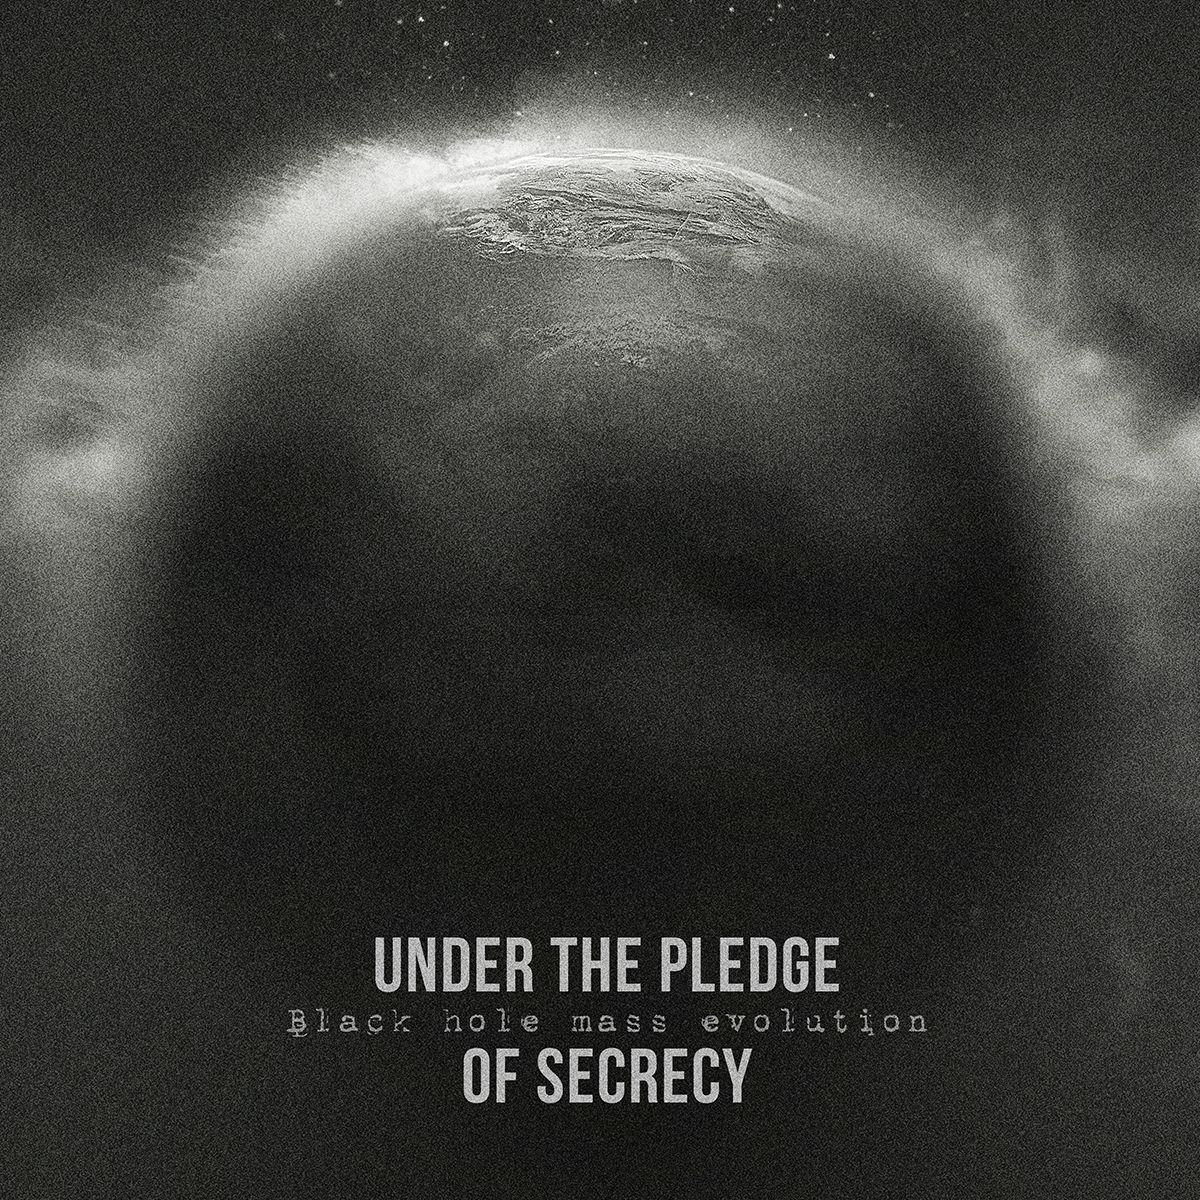 Black hole mass evolution | UNDER THE PLEDGE OF SECRECY